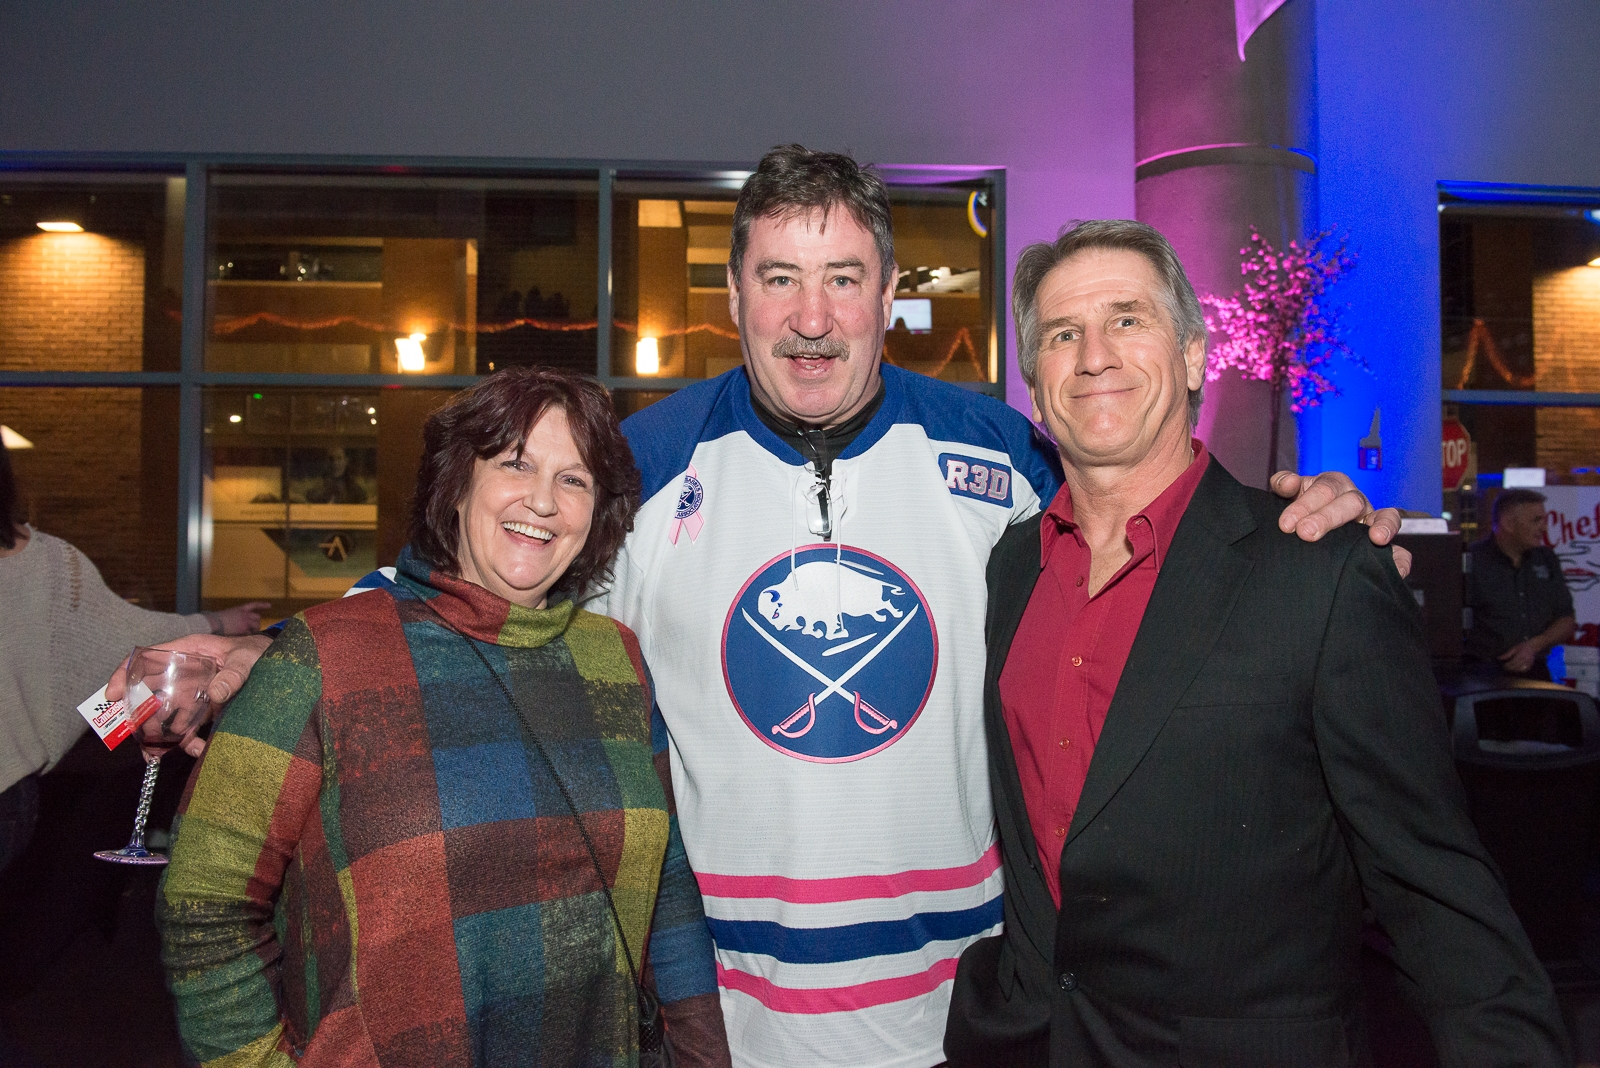 Larry Playfair, in the center at the Sabres' alumni wine festival in March, will be part of the televised NHL Draft Lottery on Saturday. (Matt Weinberg/Special To The News)